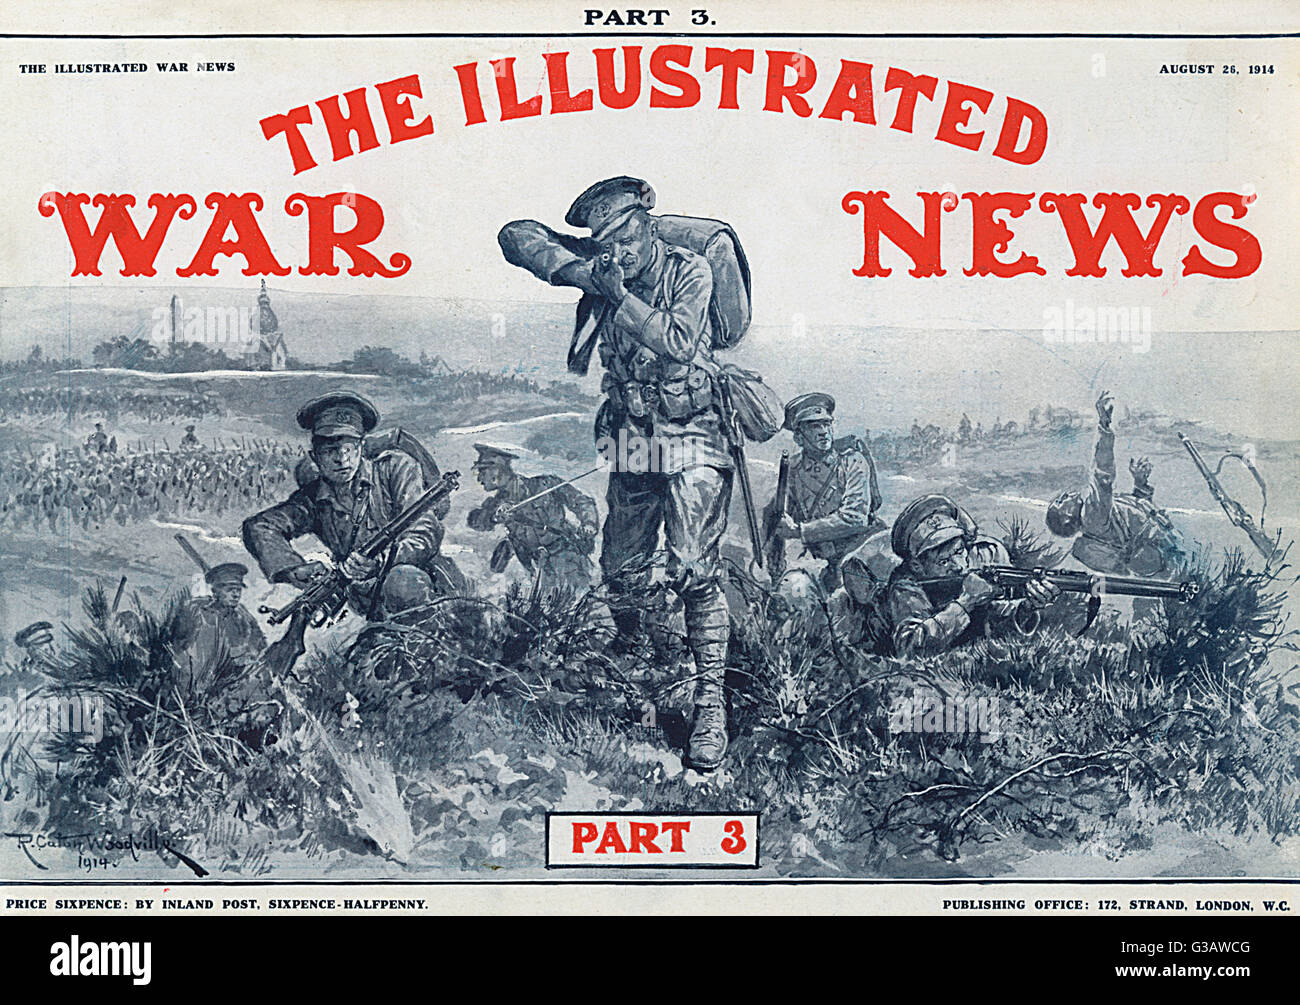 Front cover of The Illustrated War News featuring British infantry fighting in the open, a form of warfare that - Stock Image